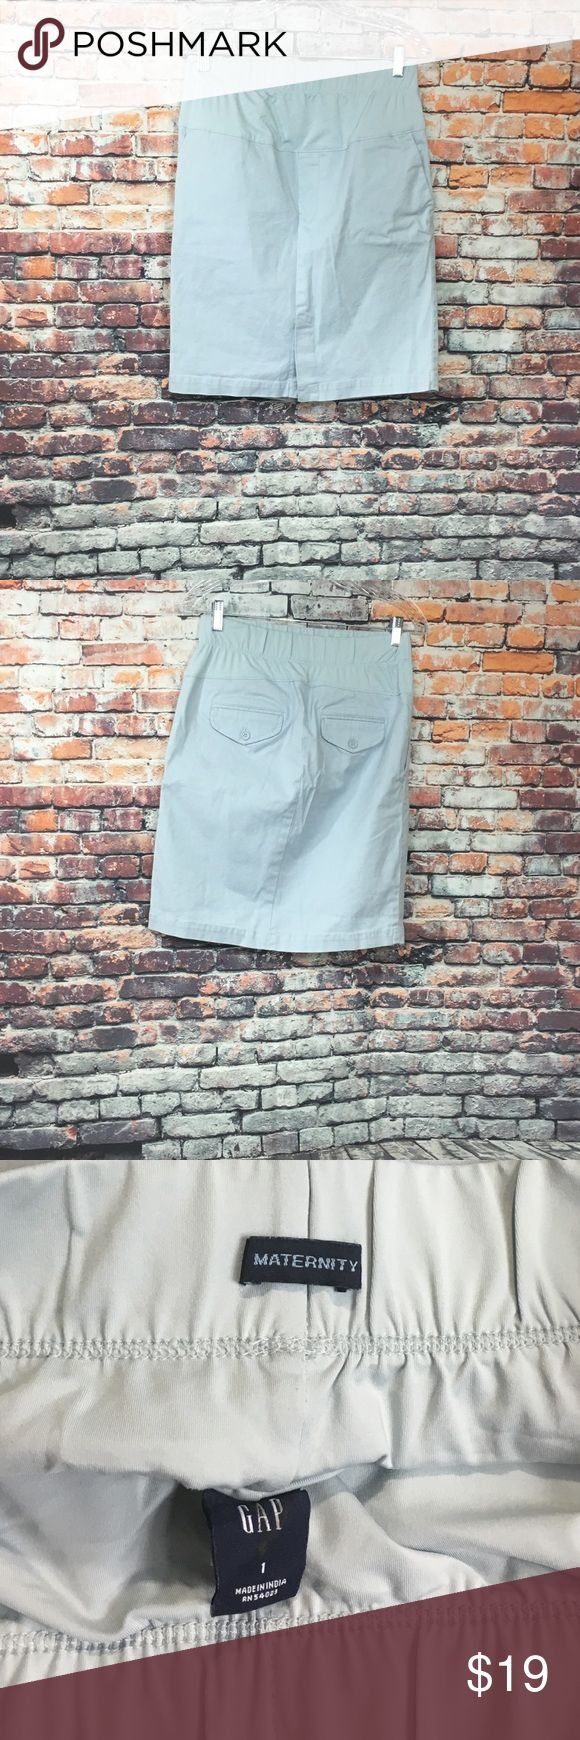 Gap Maternity Pencil Straight Skirt Women's Size 1 Preowned Gap Maternity pencil Straight Skirt Women's Size 1 pencil skirt with stretch under belly waistband four pockets and front slit   Shell 97% Cotton  3% Spandex  Panel  83% Polyester  17% Spandex  Color baby blue  Nonsmoking Home  Perfect condition  See pictures for measurements!! (H) GAP Skirts Pencil